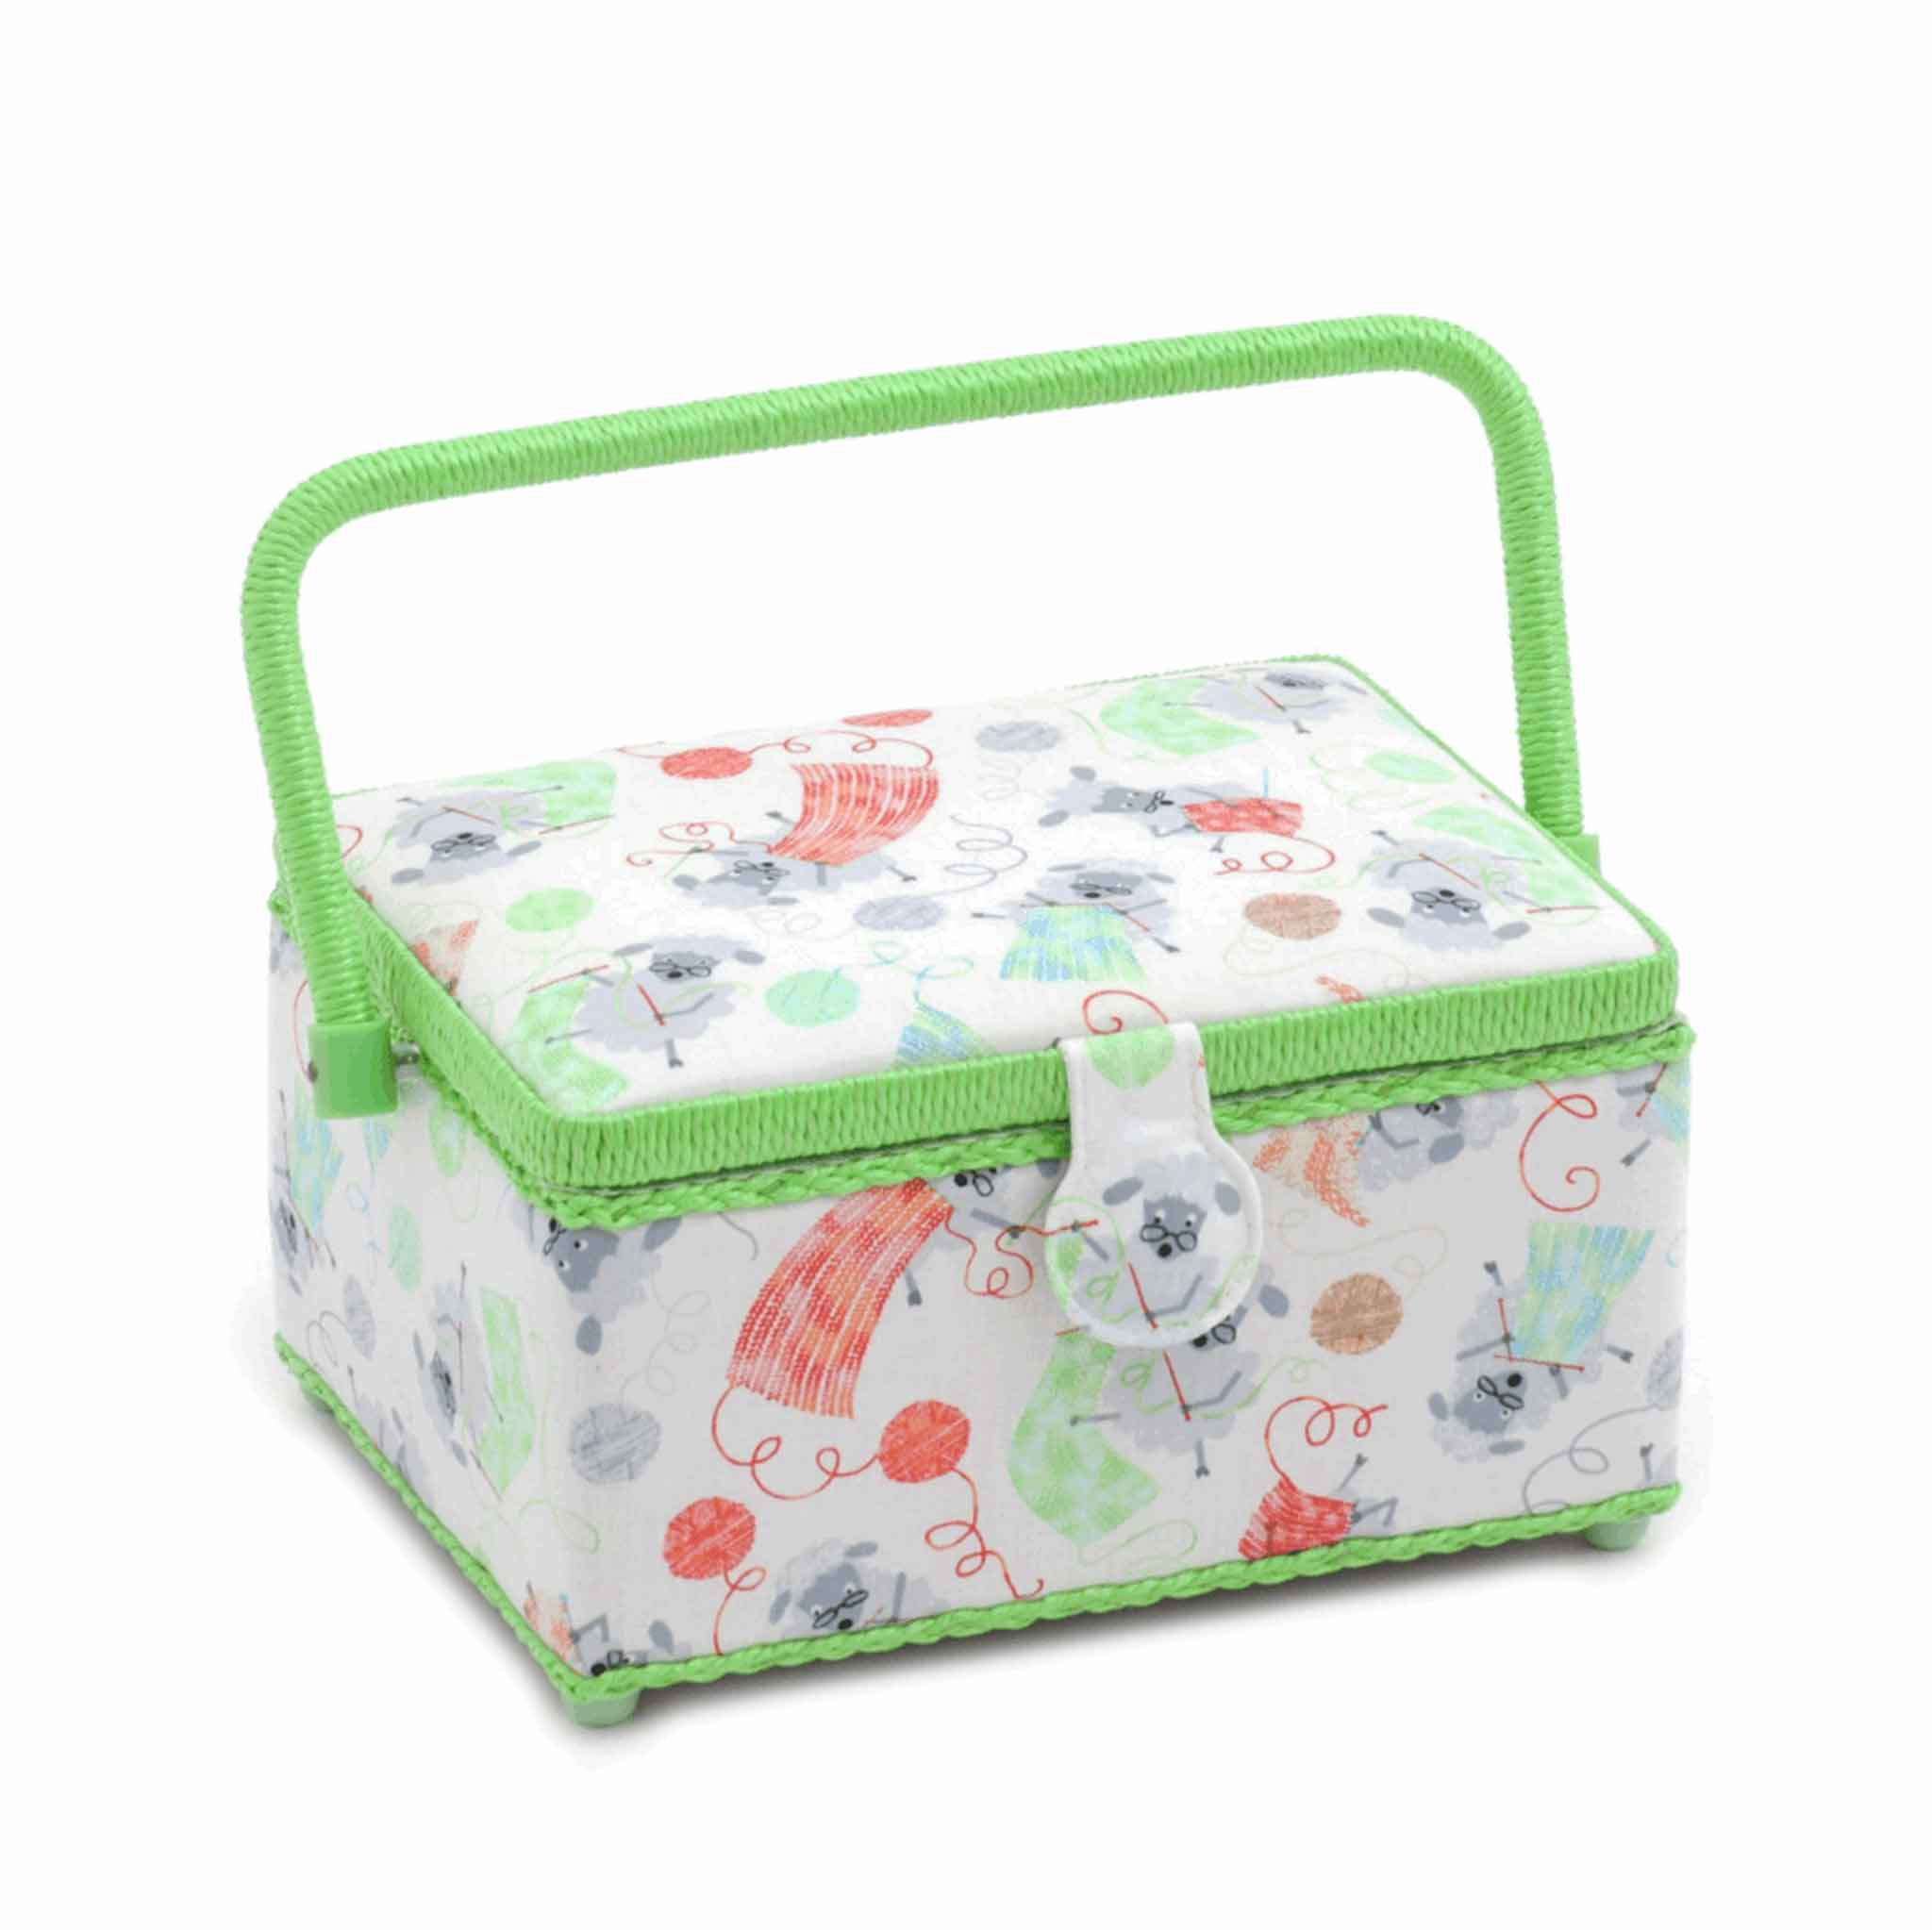 Knitting Sheep Sewing Box, Medium Rectangle Sewing Box, Green and White Fun Sheep Design, Hobby Gift  HGM/328